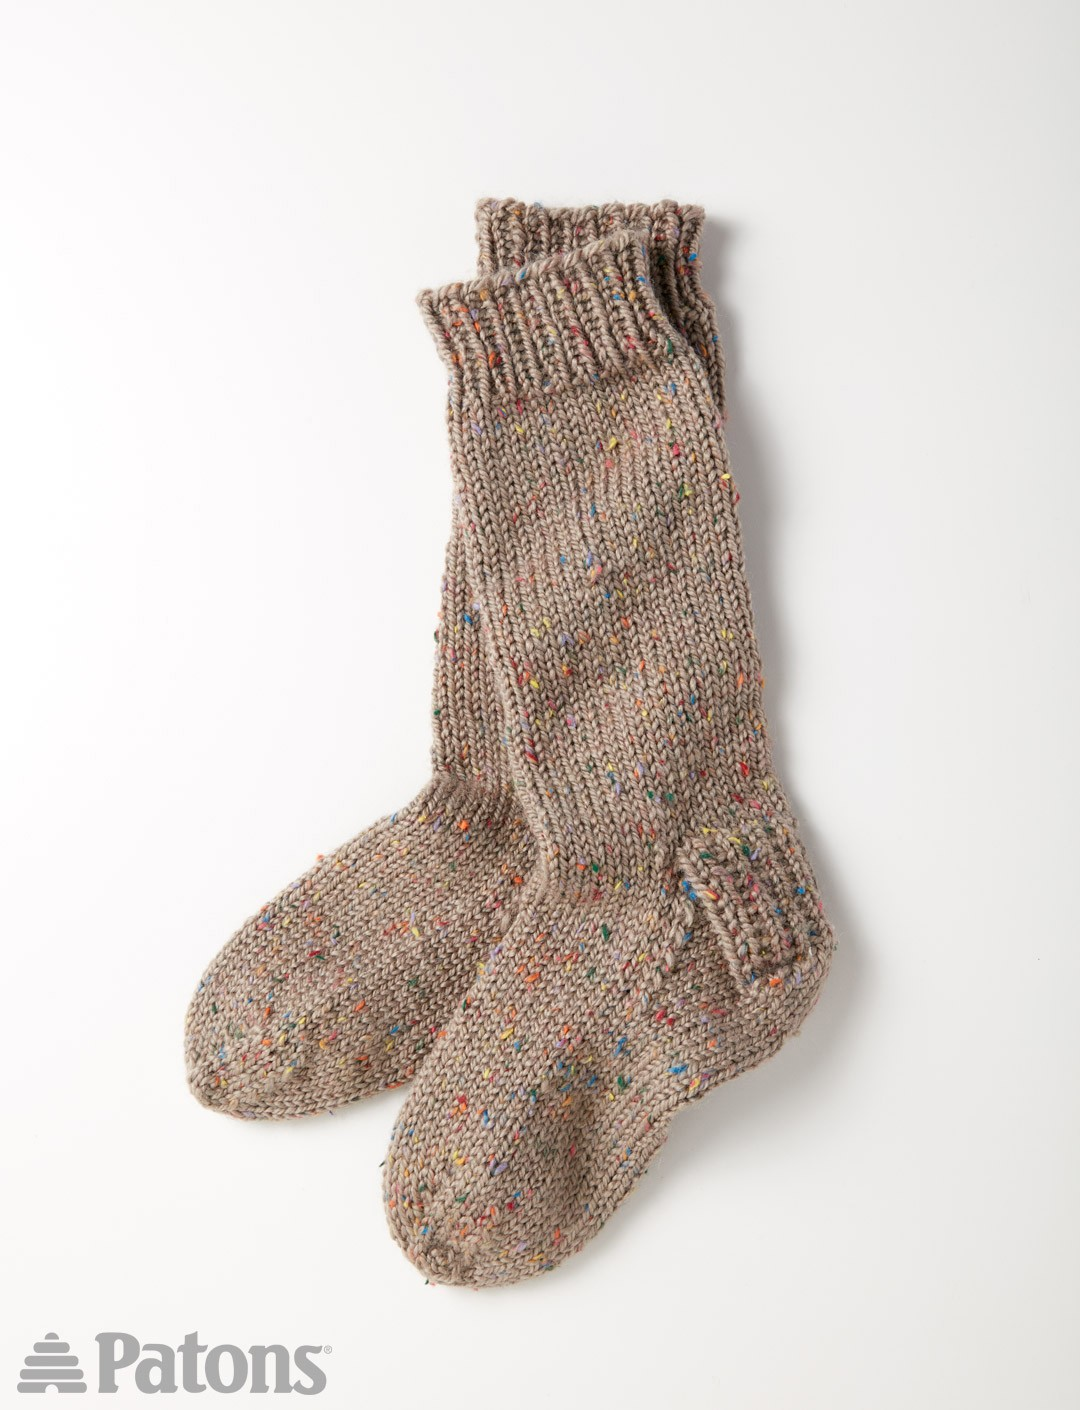 Patons Slouchy Socks, Knit Pattern Yarnspirations